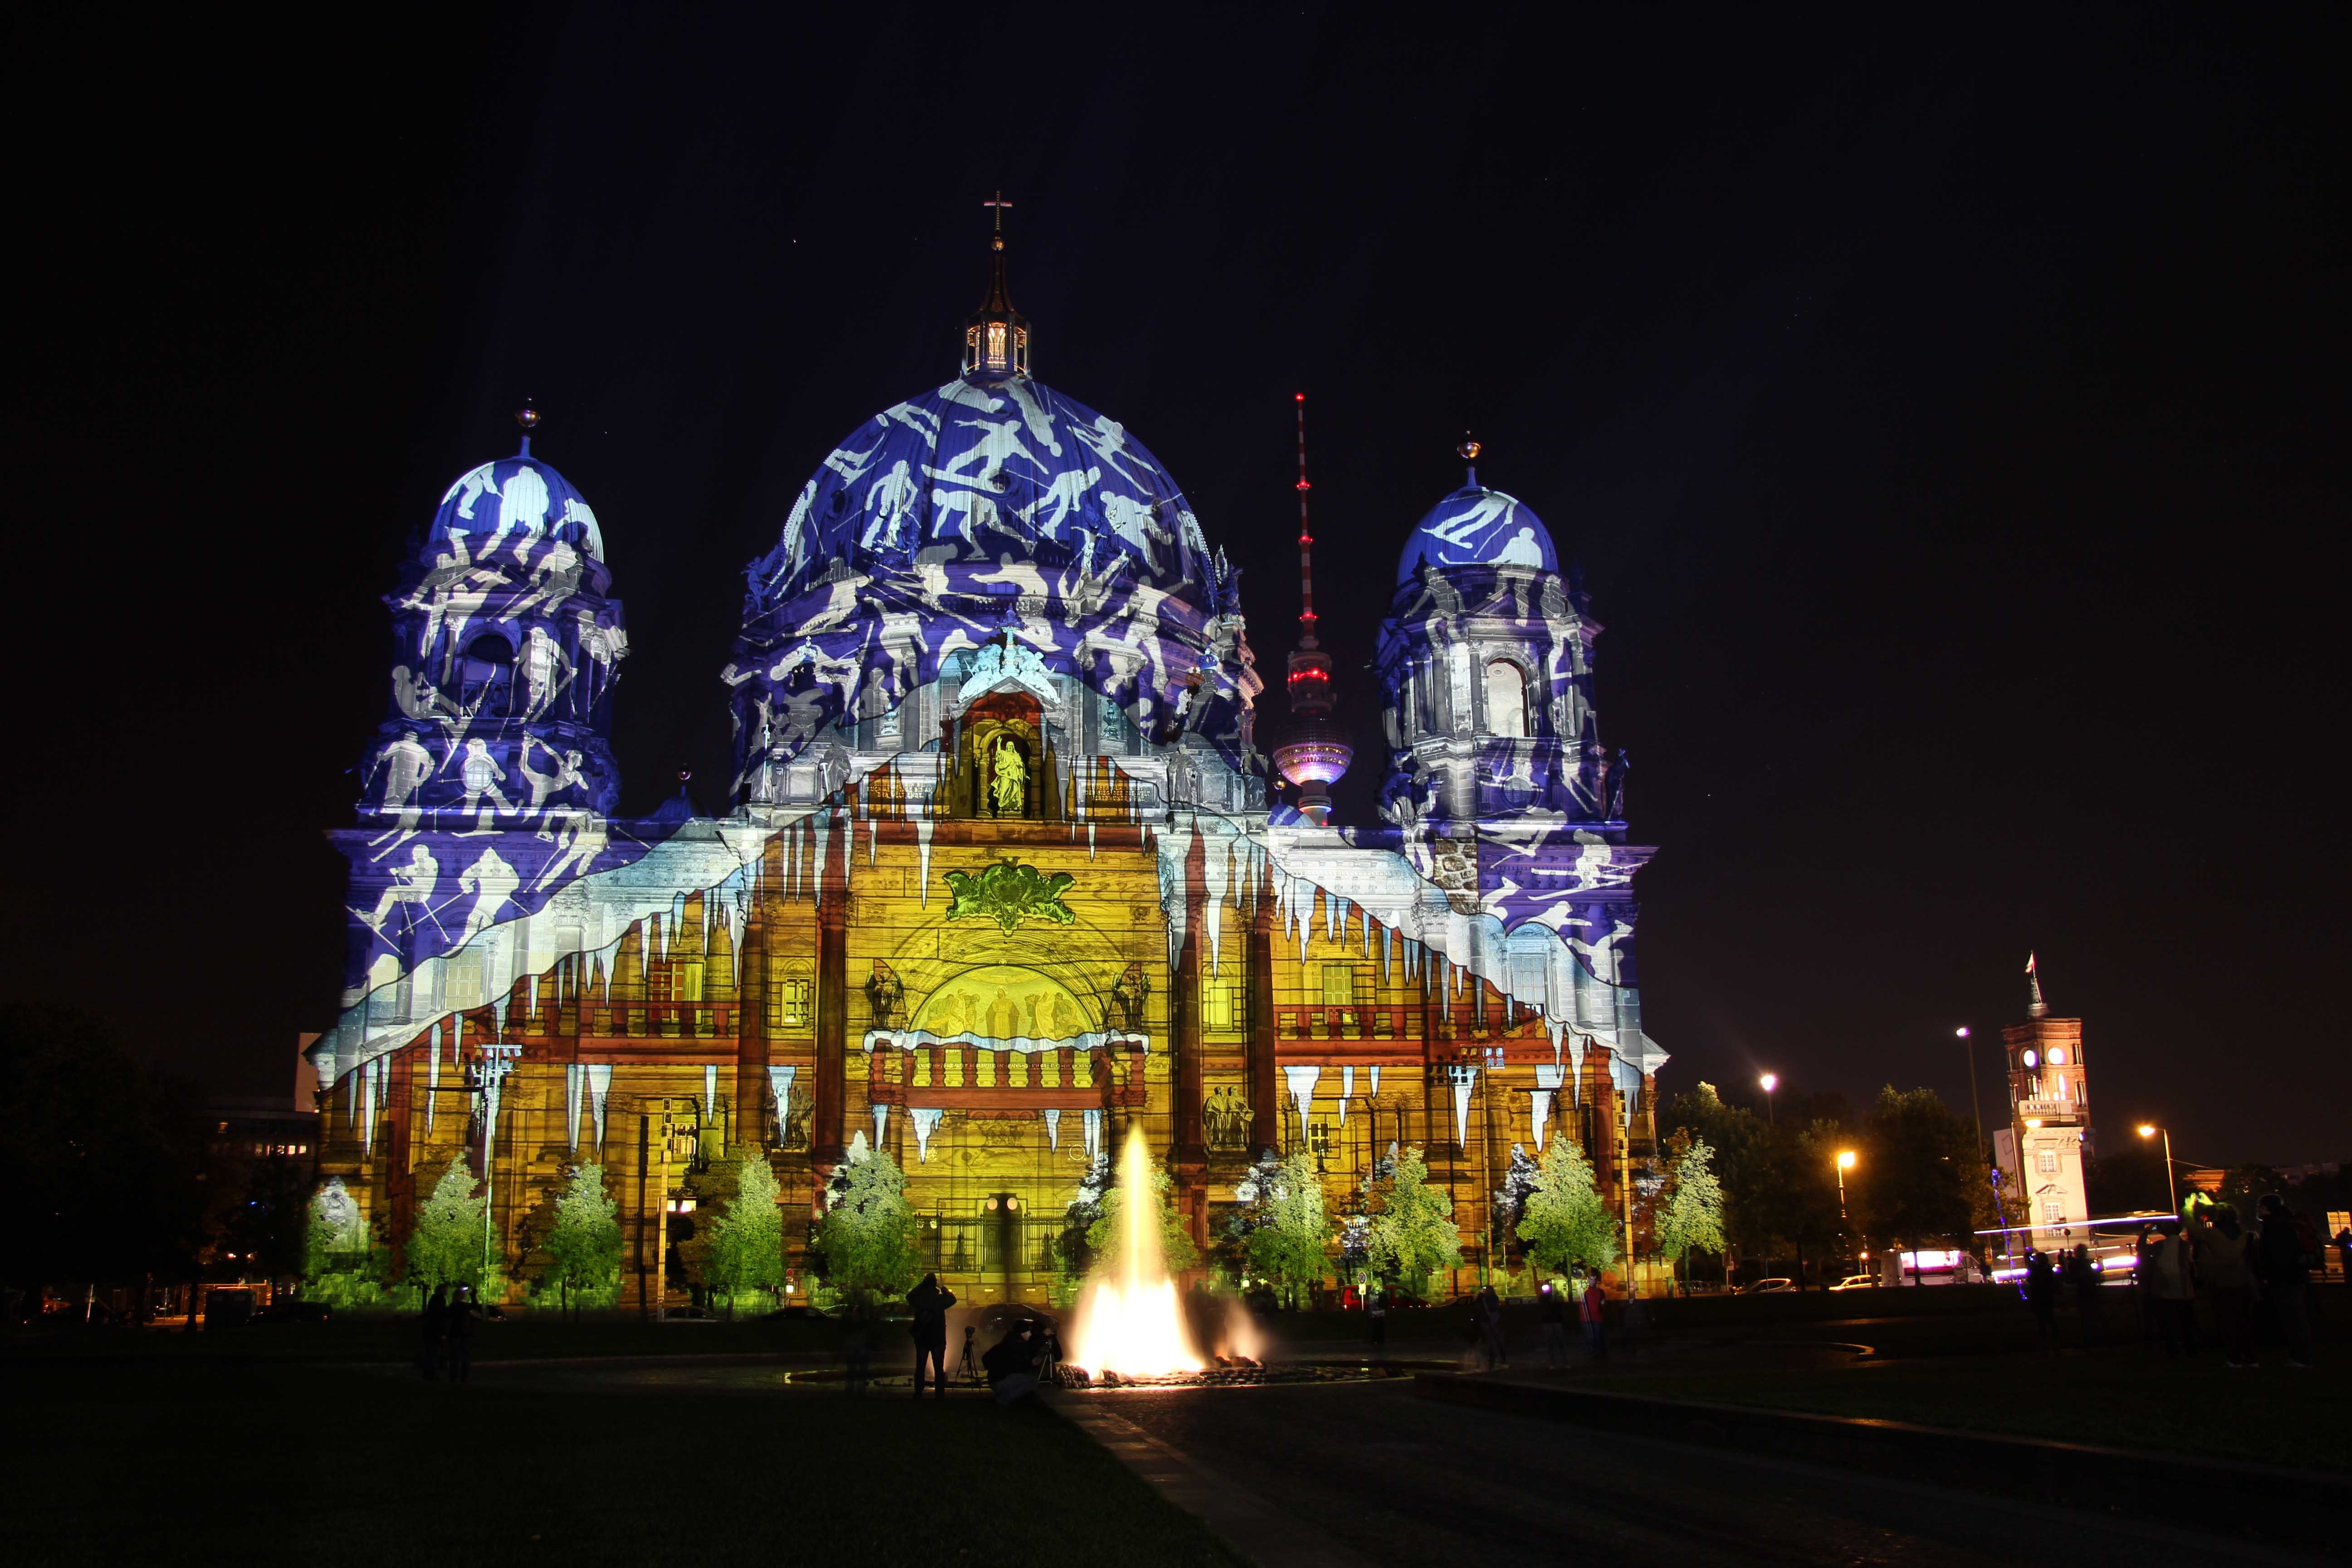 The Berliner Dom (Berlin Cathedral) with a wintry projection by Urlaubsland Österreich (Tourist Country Austria) during the Festival of Lights